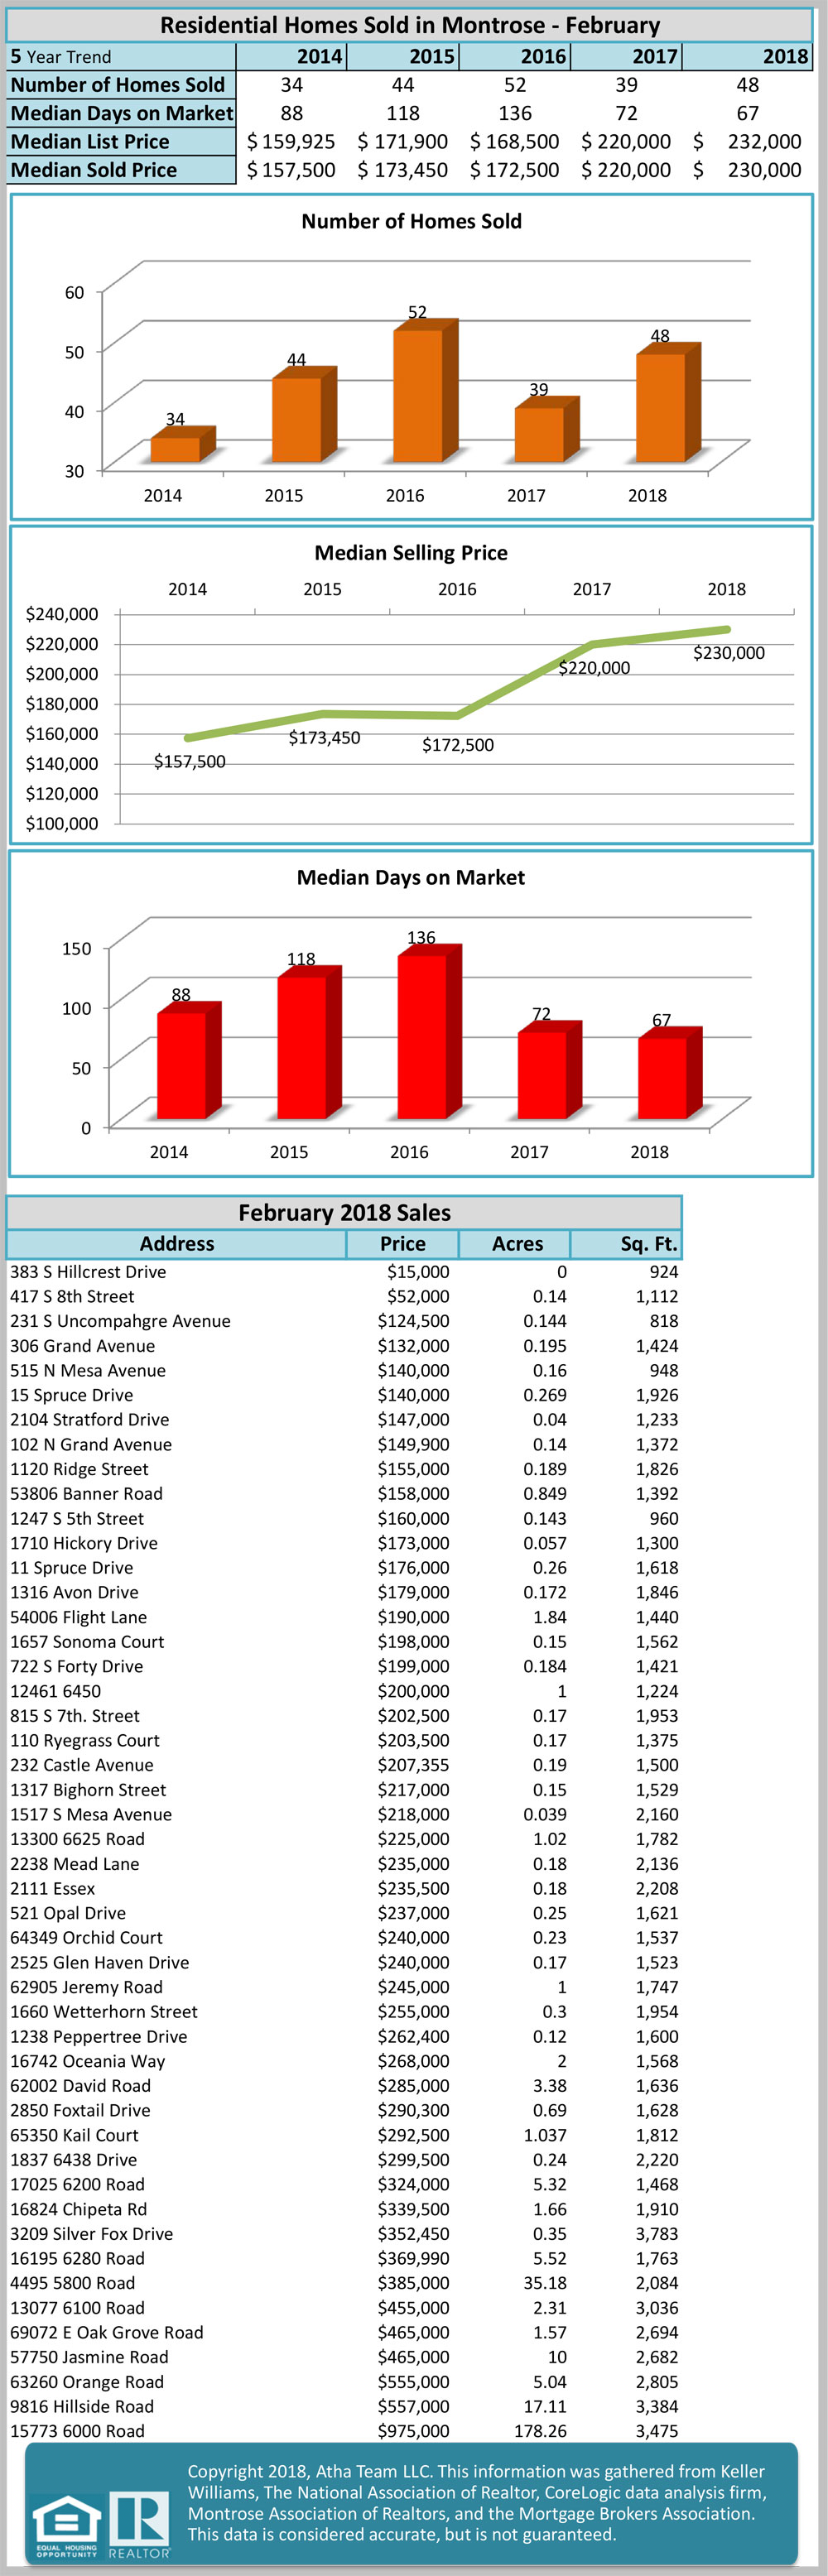 March 2018 local and national market stats update - Atha Team